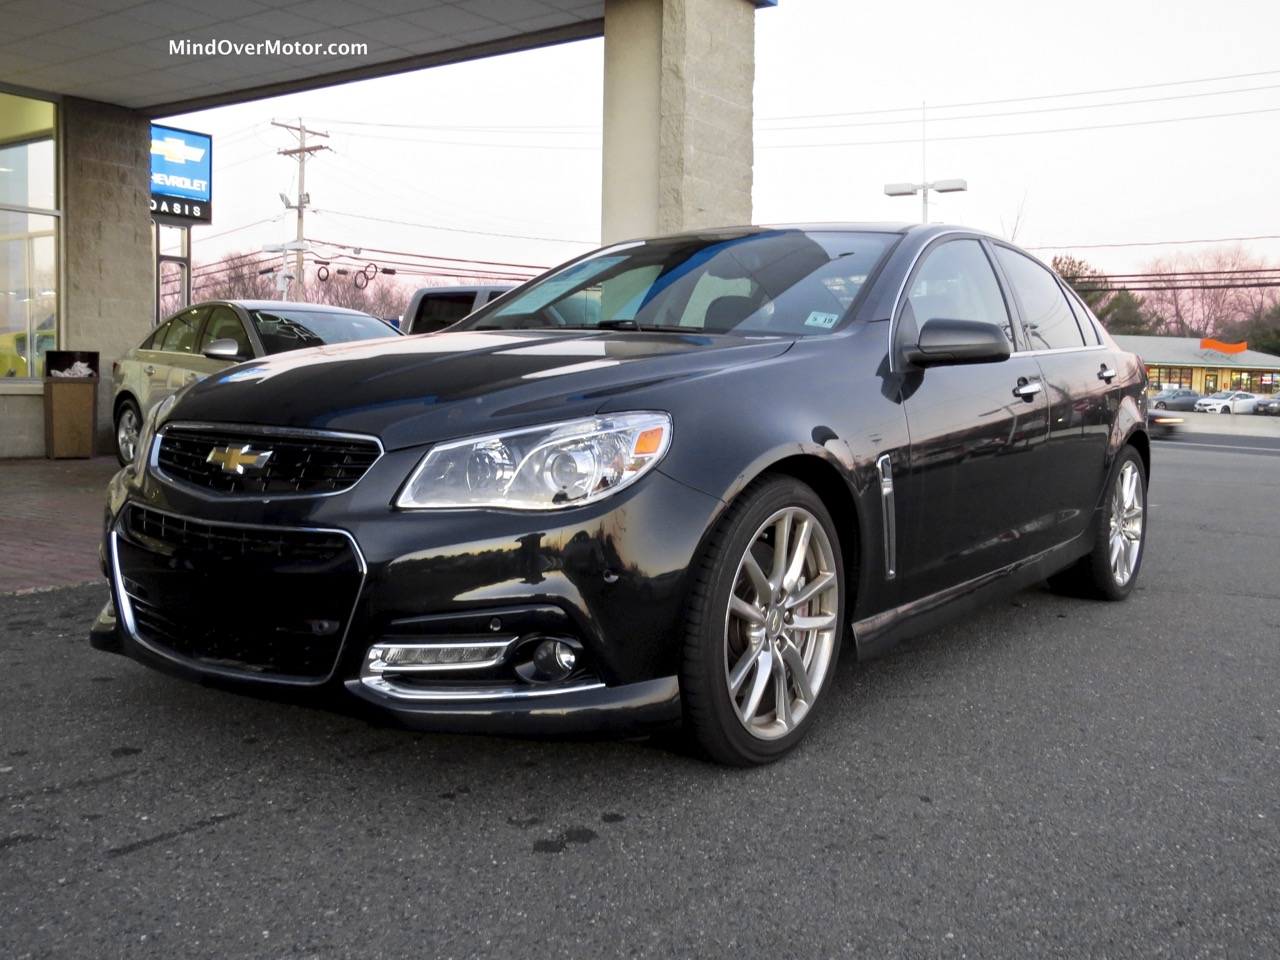 2014 Chevrolet SS Front 2